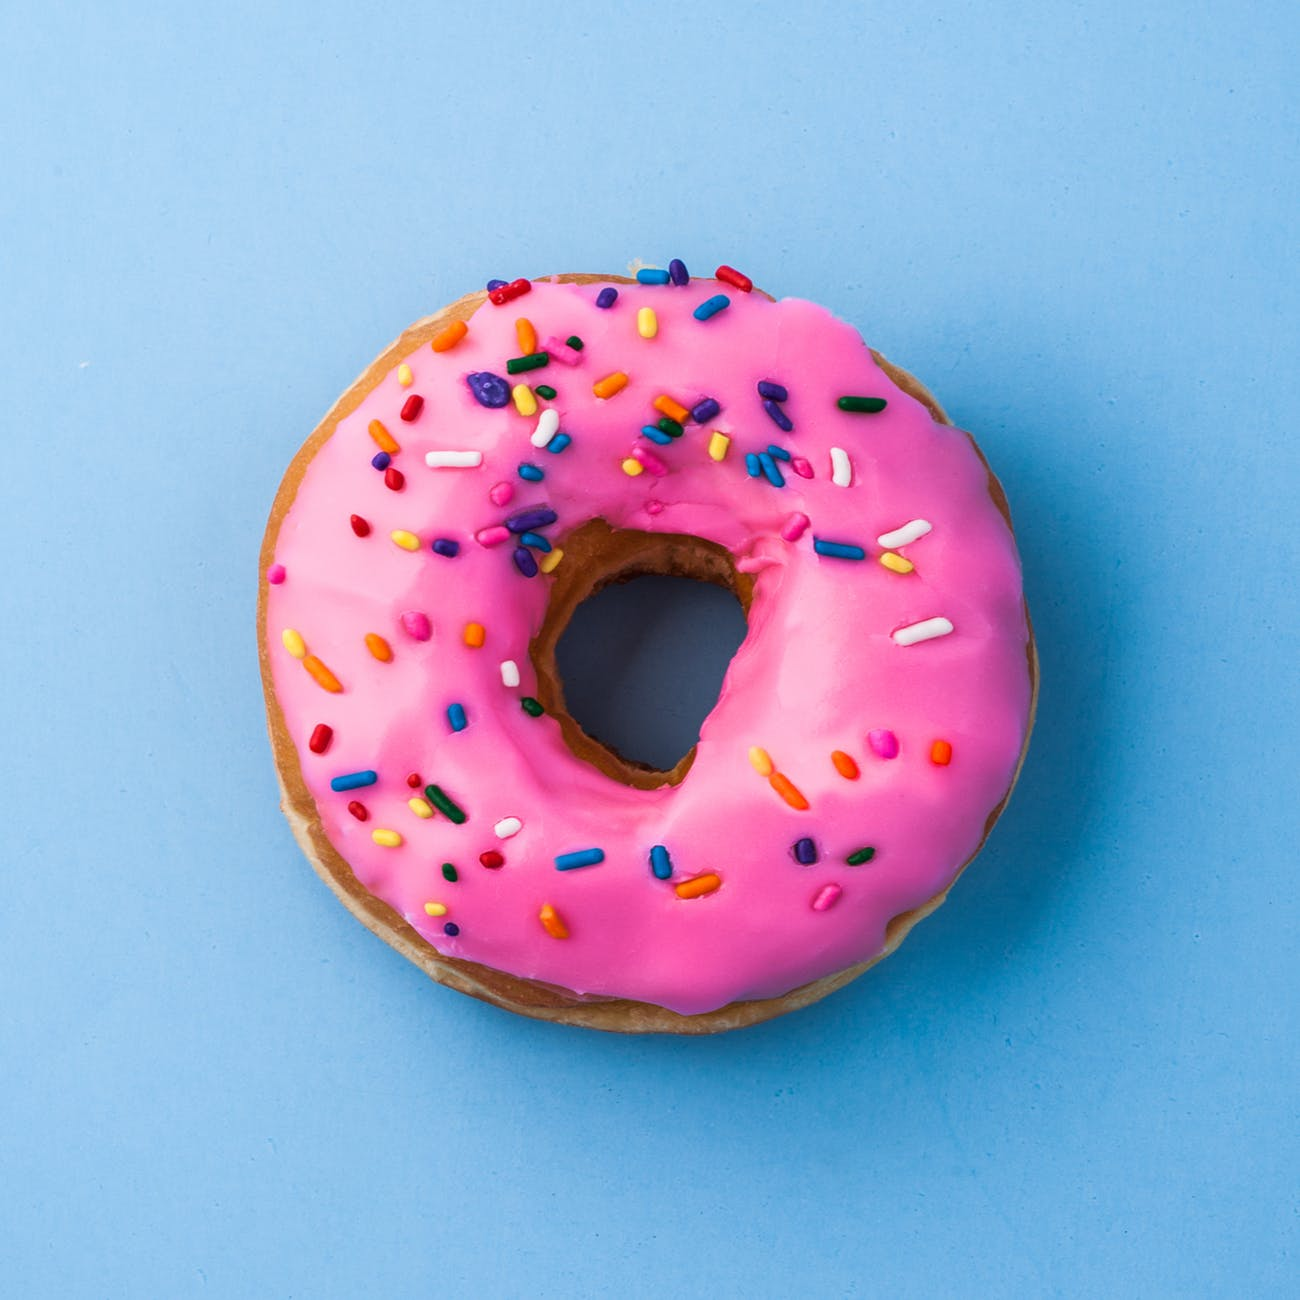 photography of pink doughnut